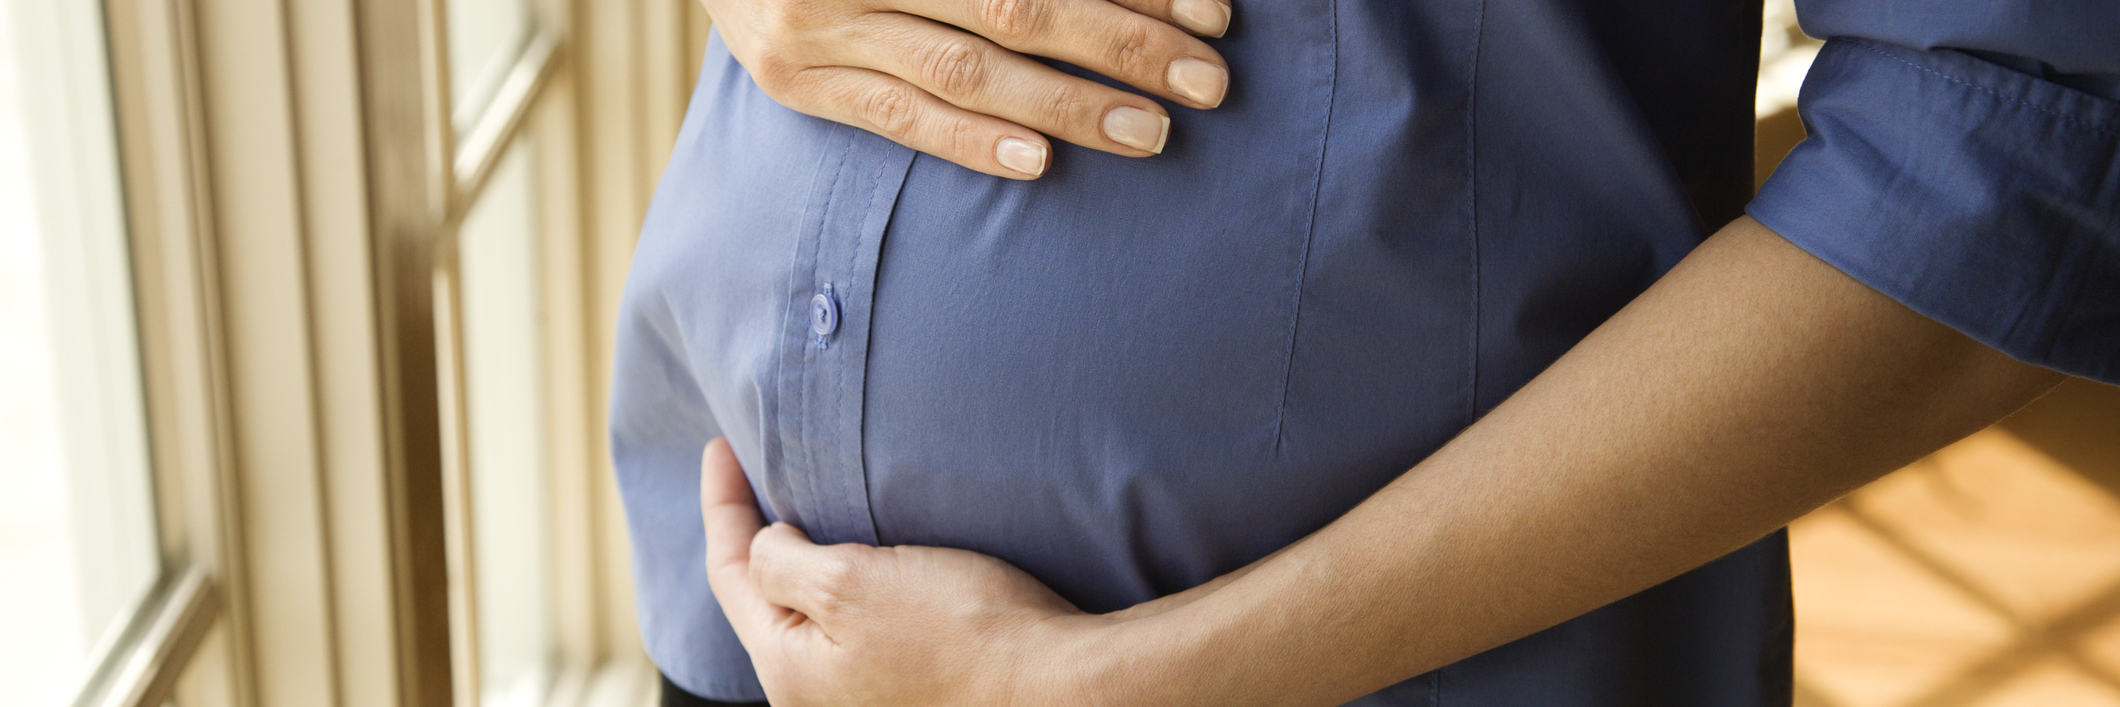 Pregnant woman wearing a denim shirt holding her belly